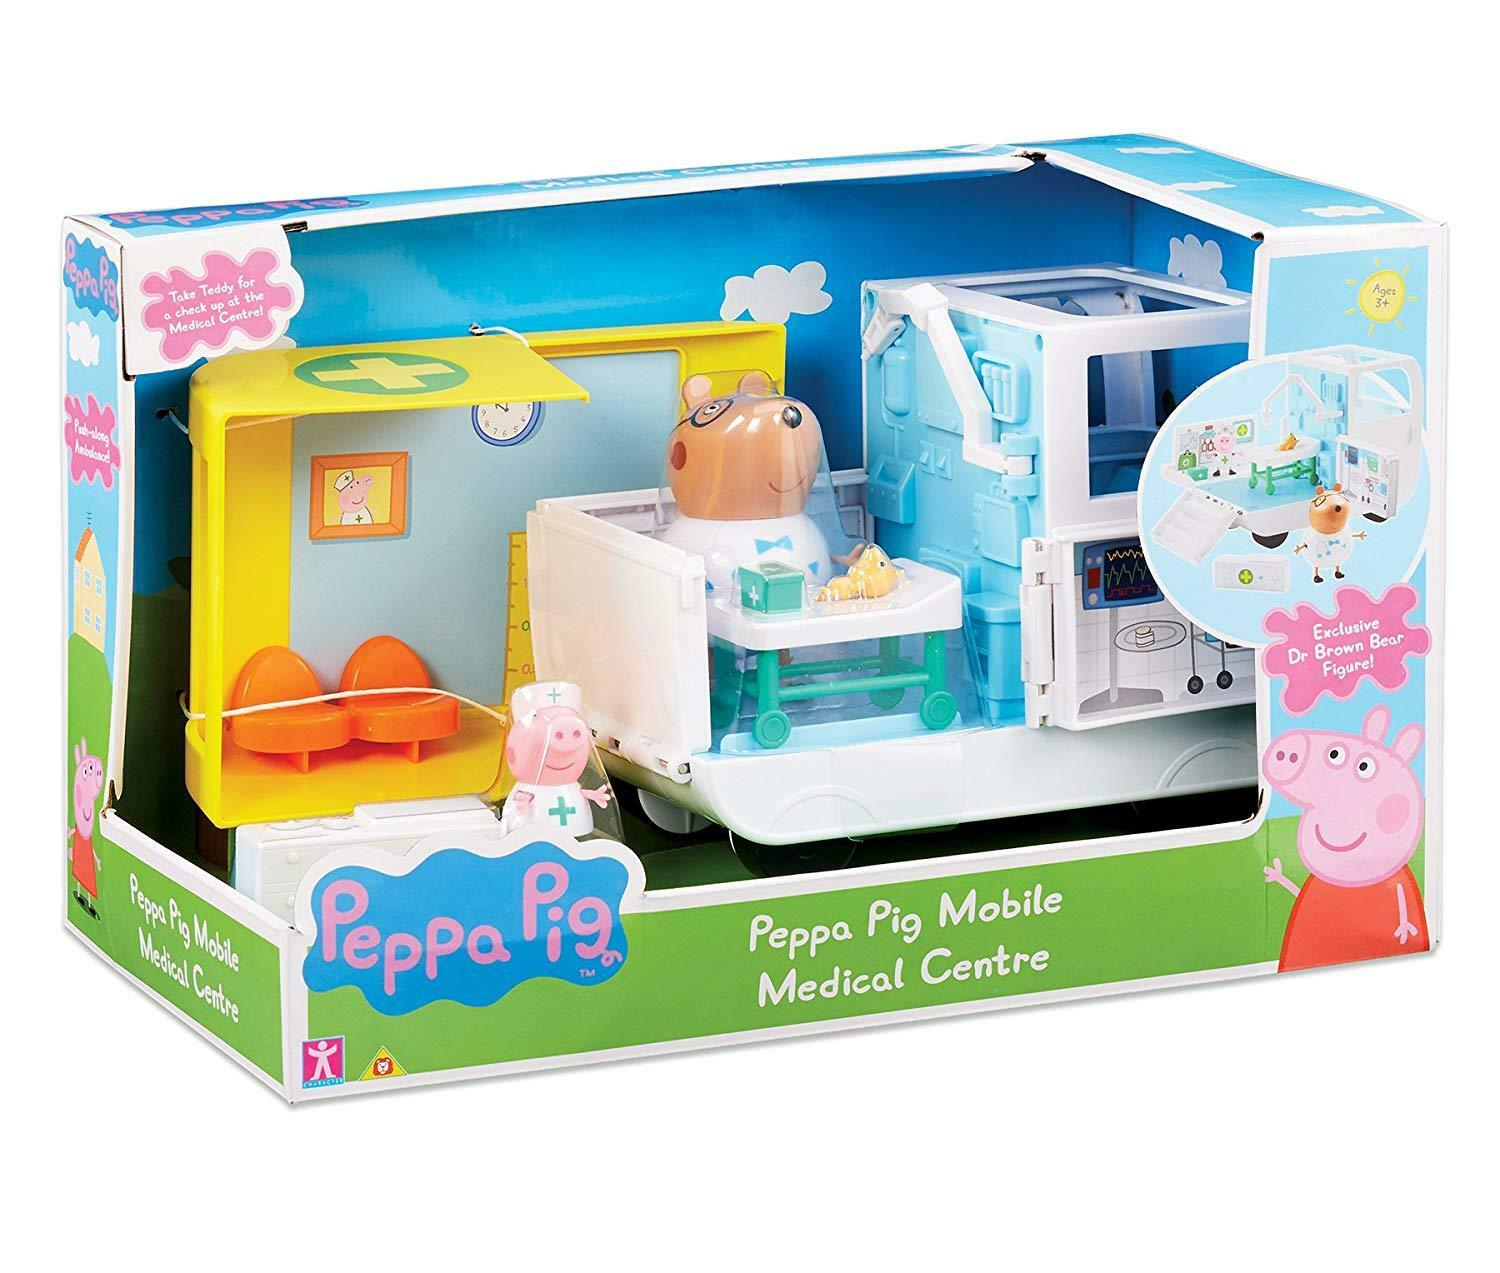 Peppa Pig Peppa's Mobile Medical Centre Centre Centre Toy Playset & Figures Age 3+ 5ab4a7